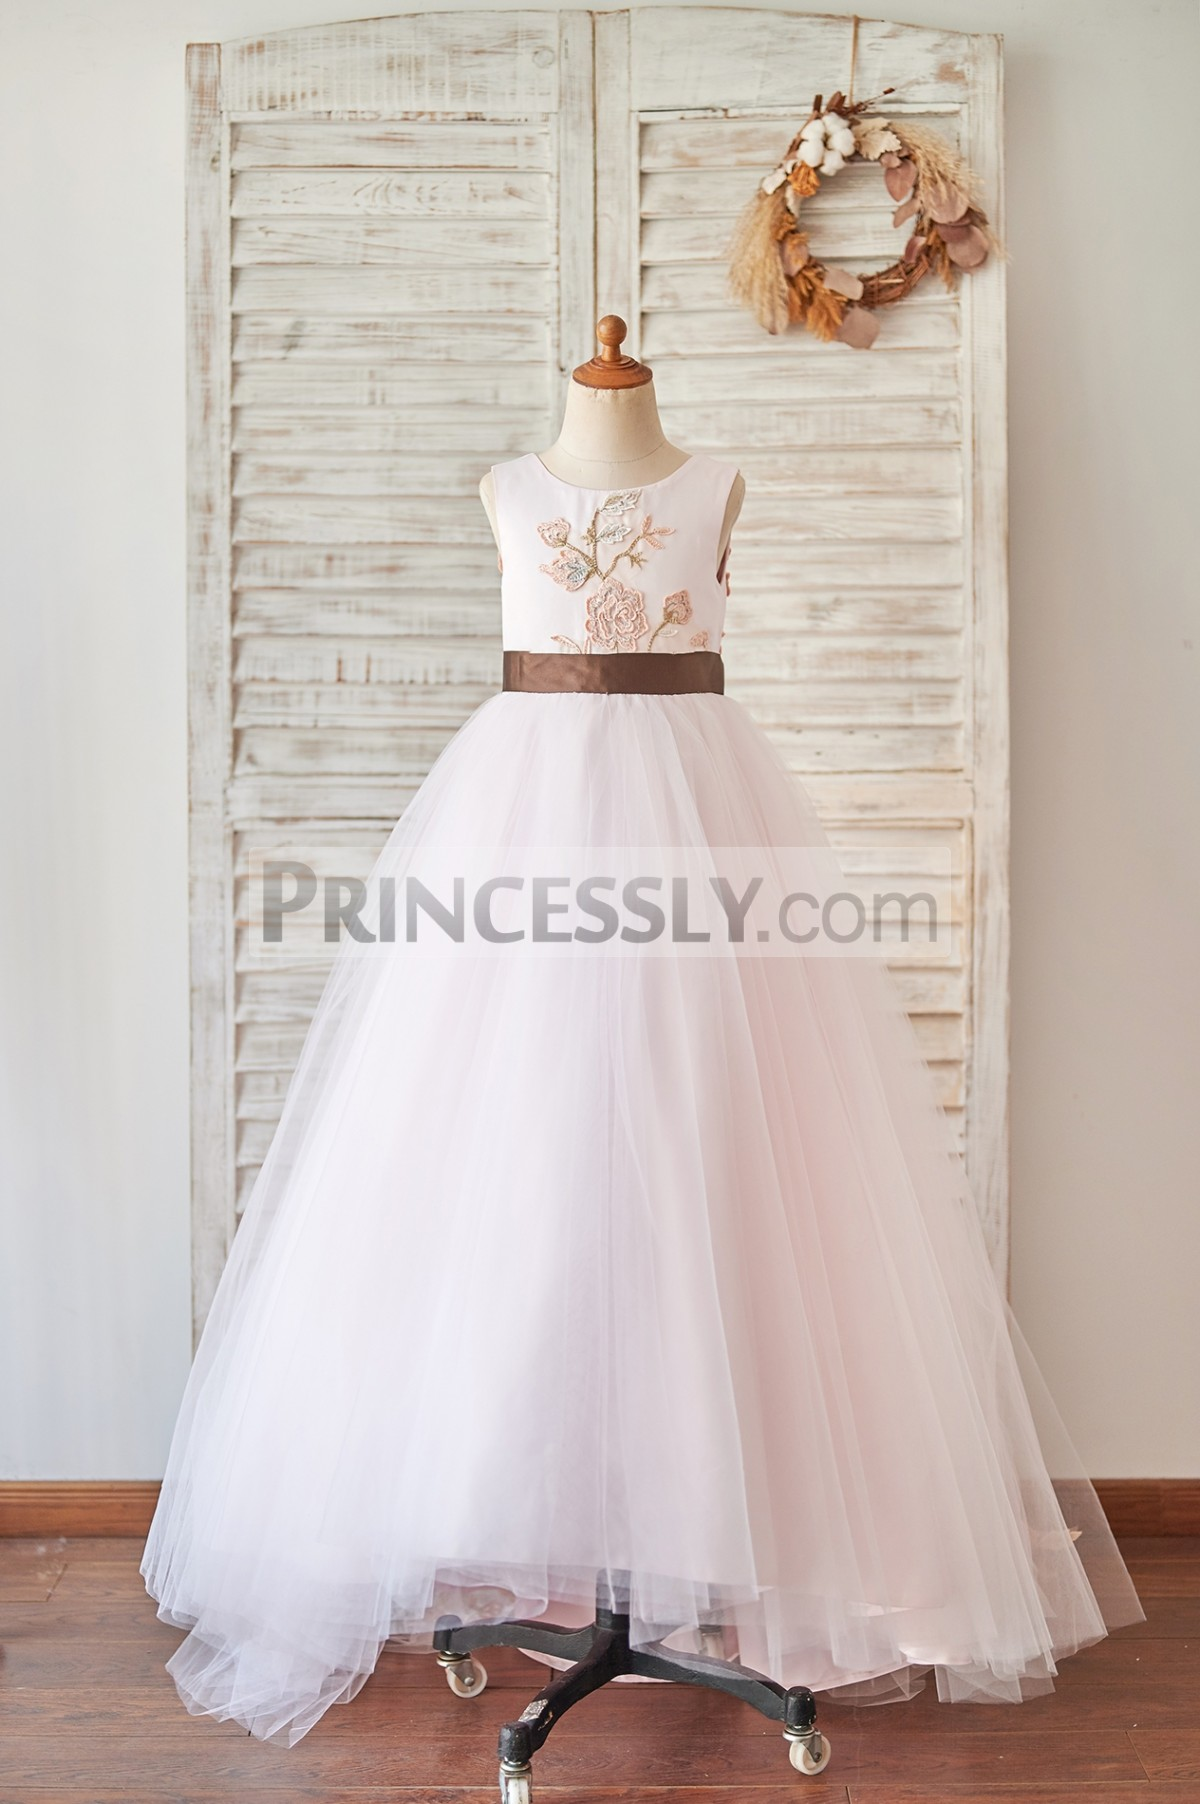 Princessly.com-K1004065-Pink Satin Tulle U Back Wedding Flower Girl Dress with Embroidery Lace-31